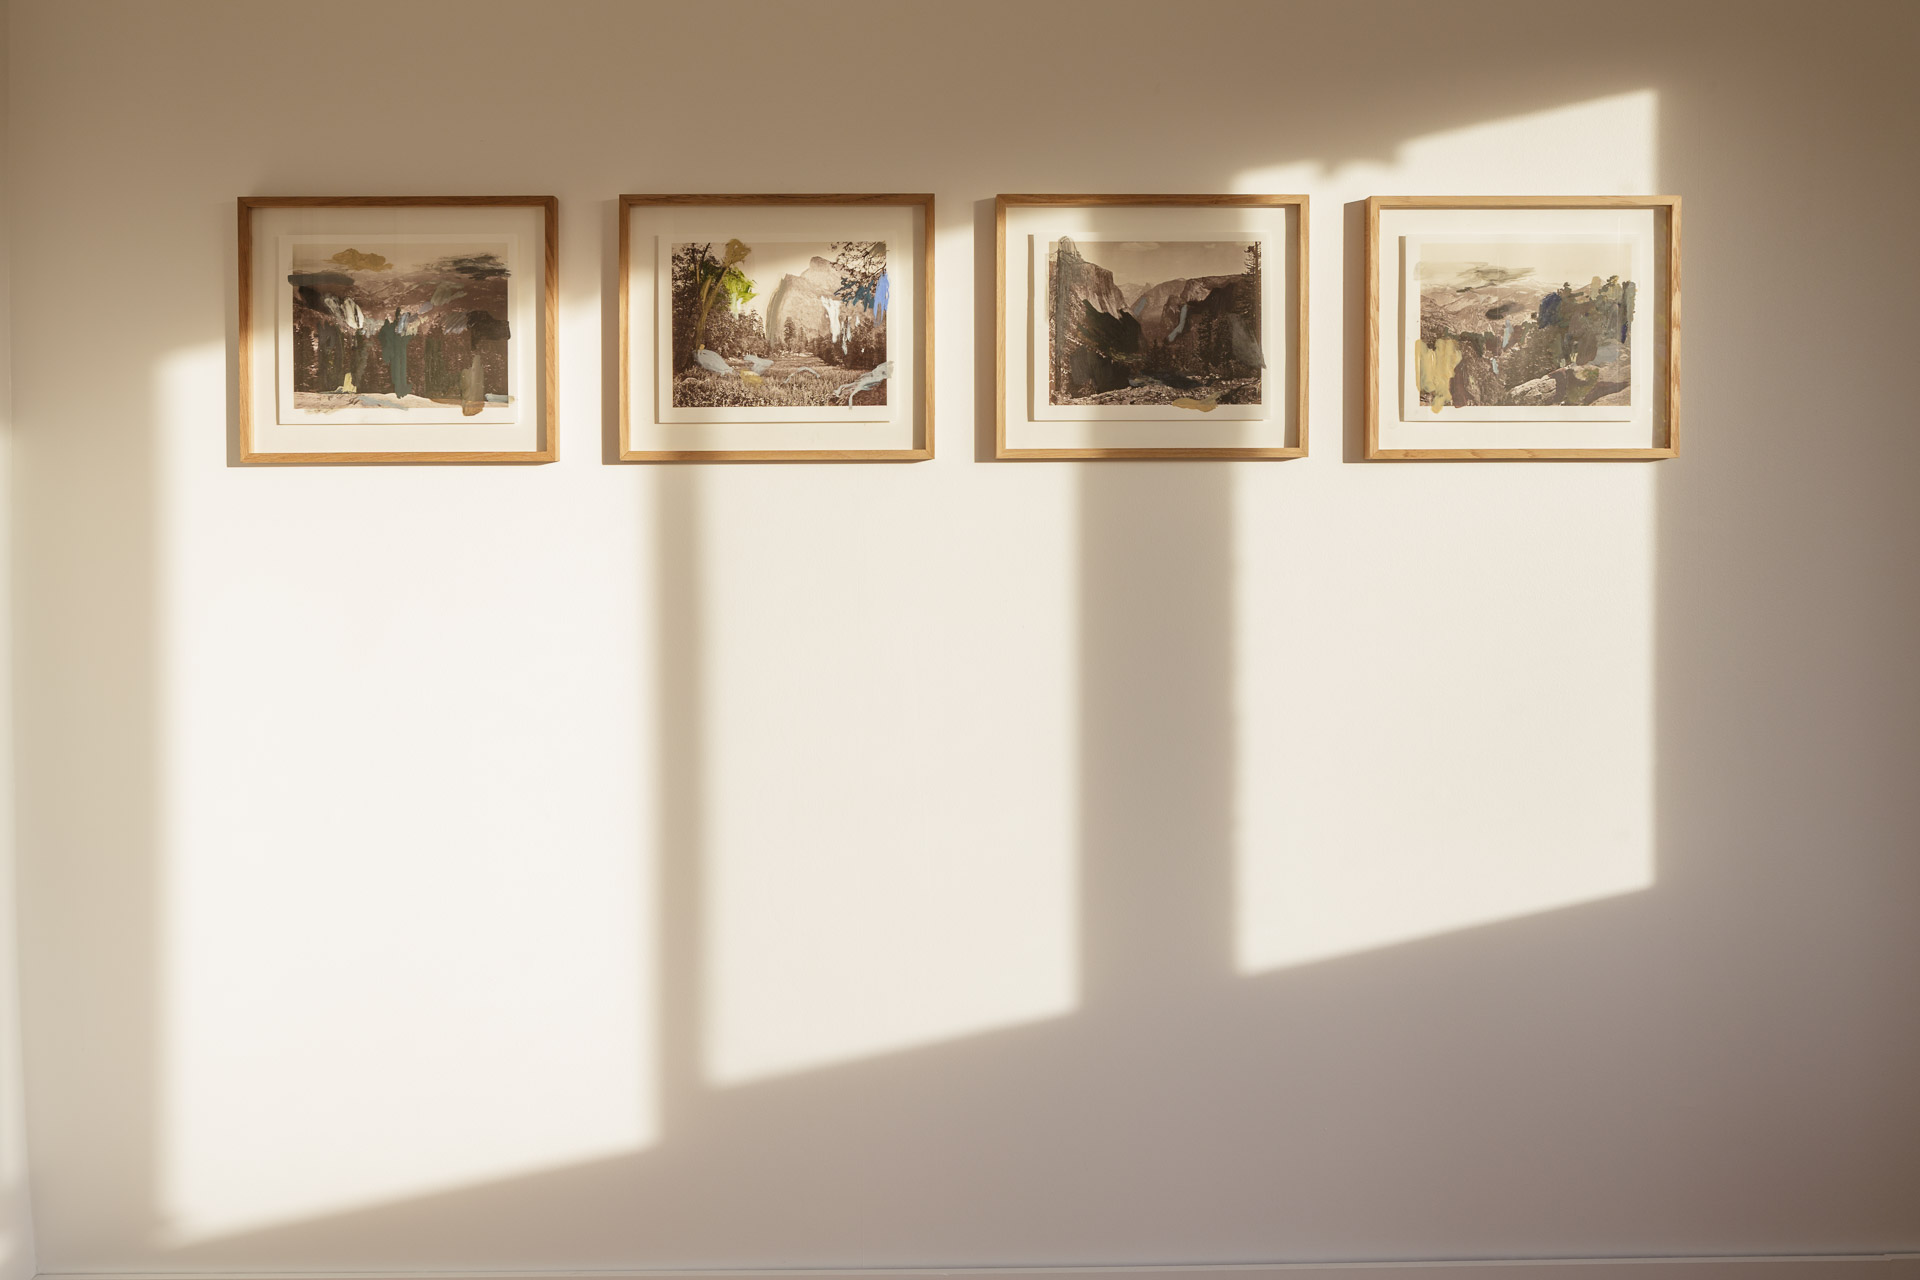 Over Watkins , 2015   After Carleton Watkins  oil, ink, gouache, graphite on print 28 x 35 cm each / oak wooden frame : 39 x 46 x 2,5 cm each    Golden Watkins , 2016   After Carleton Watkins  oil on print 28 x 35 cm / oak wooden frame : 39 x 46 x 2,5 cm  installation view,  Nuits Américaines , Maison de Chateaubriand, Châtenay-Malabry, 2017-2018   photo : Alexandre Lebrun